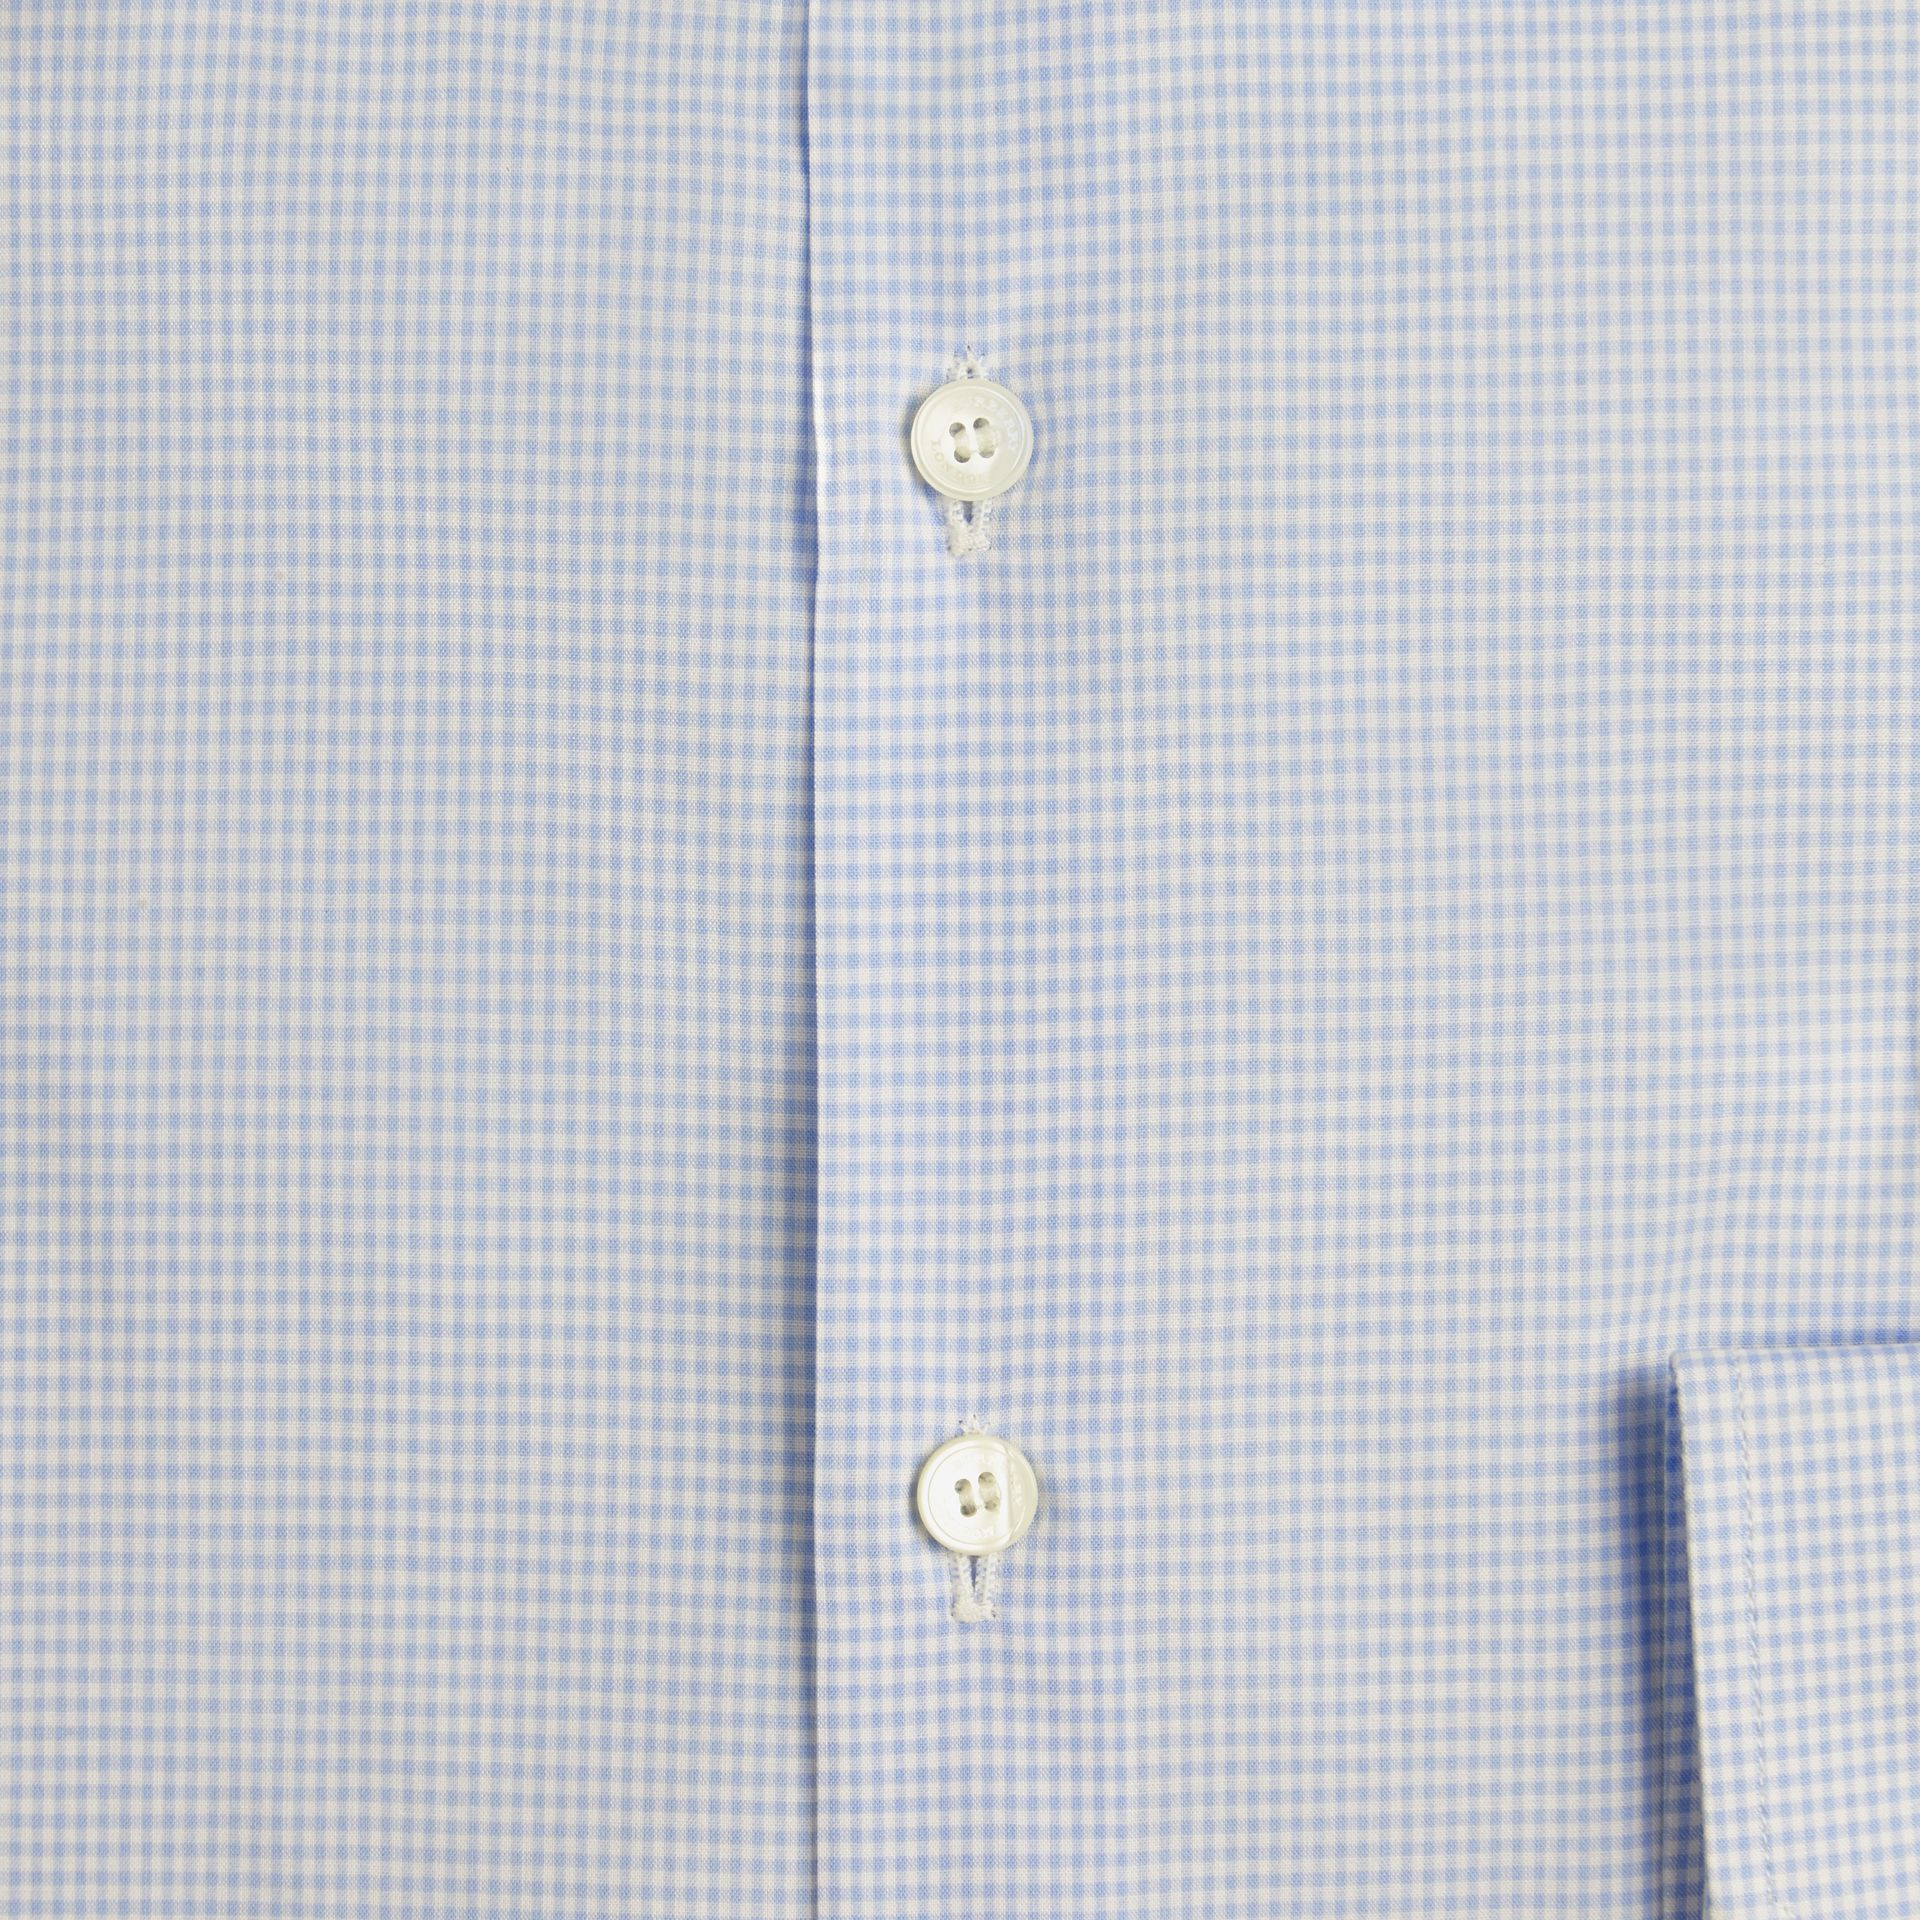 Slim Fit Gingham Cotton Poplin Shirt in City Blue - gallery image 2